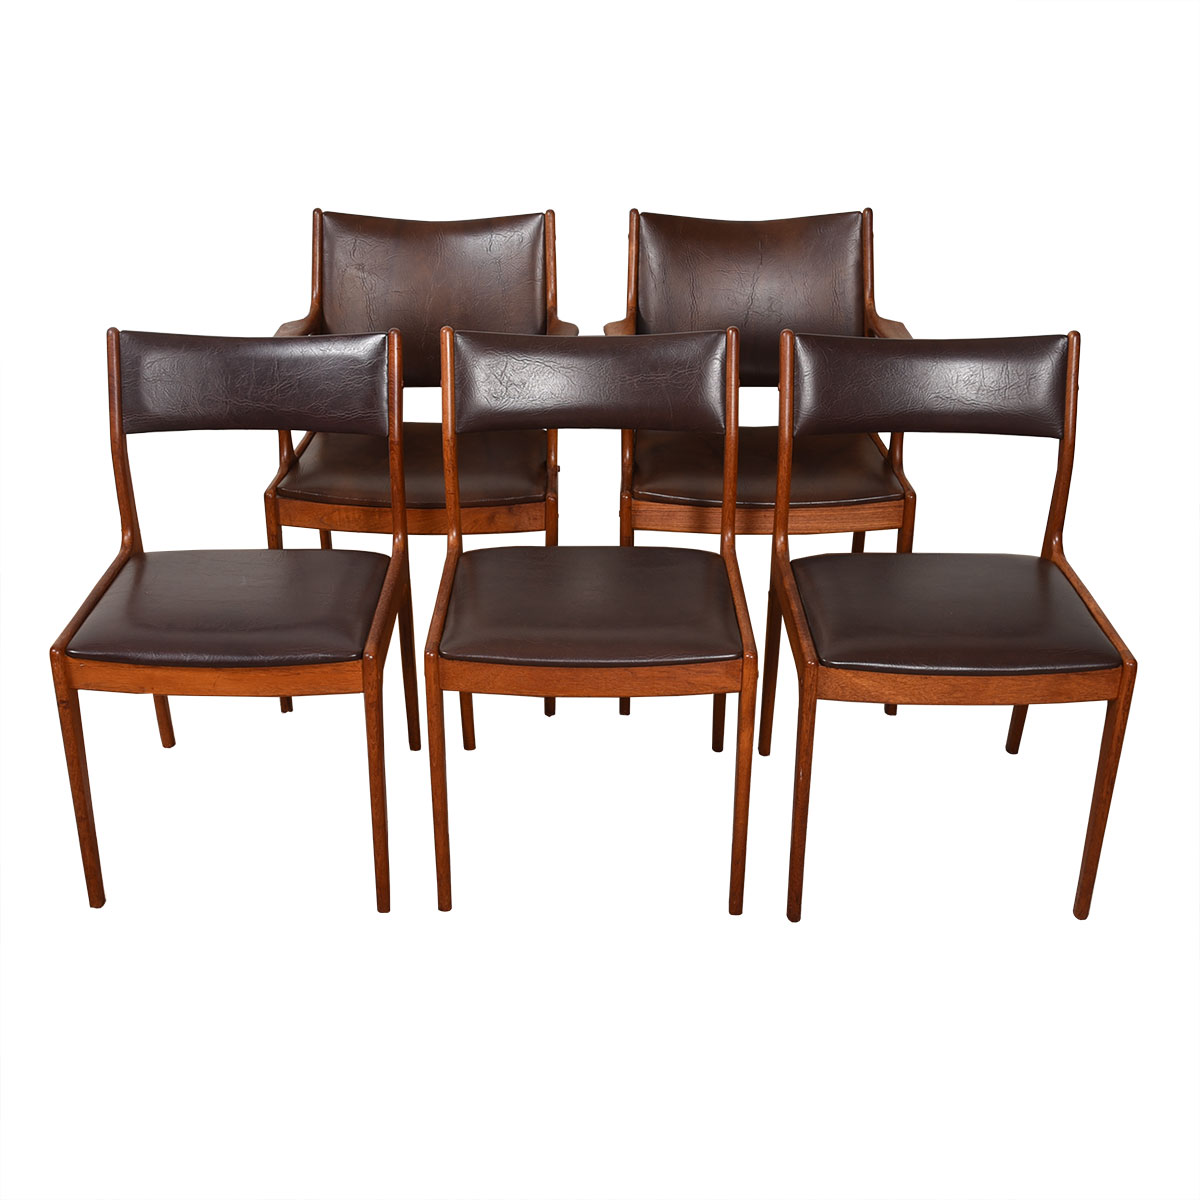 Set of 4 Danish Modern Brown + Teak Dining Chairs (2 Arm + 2 Side)